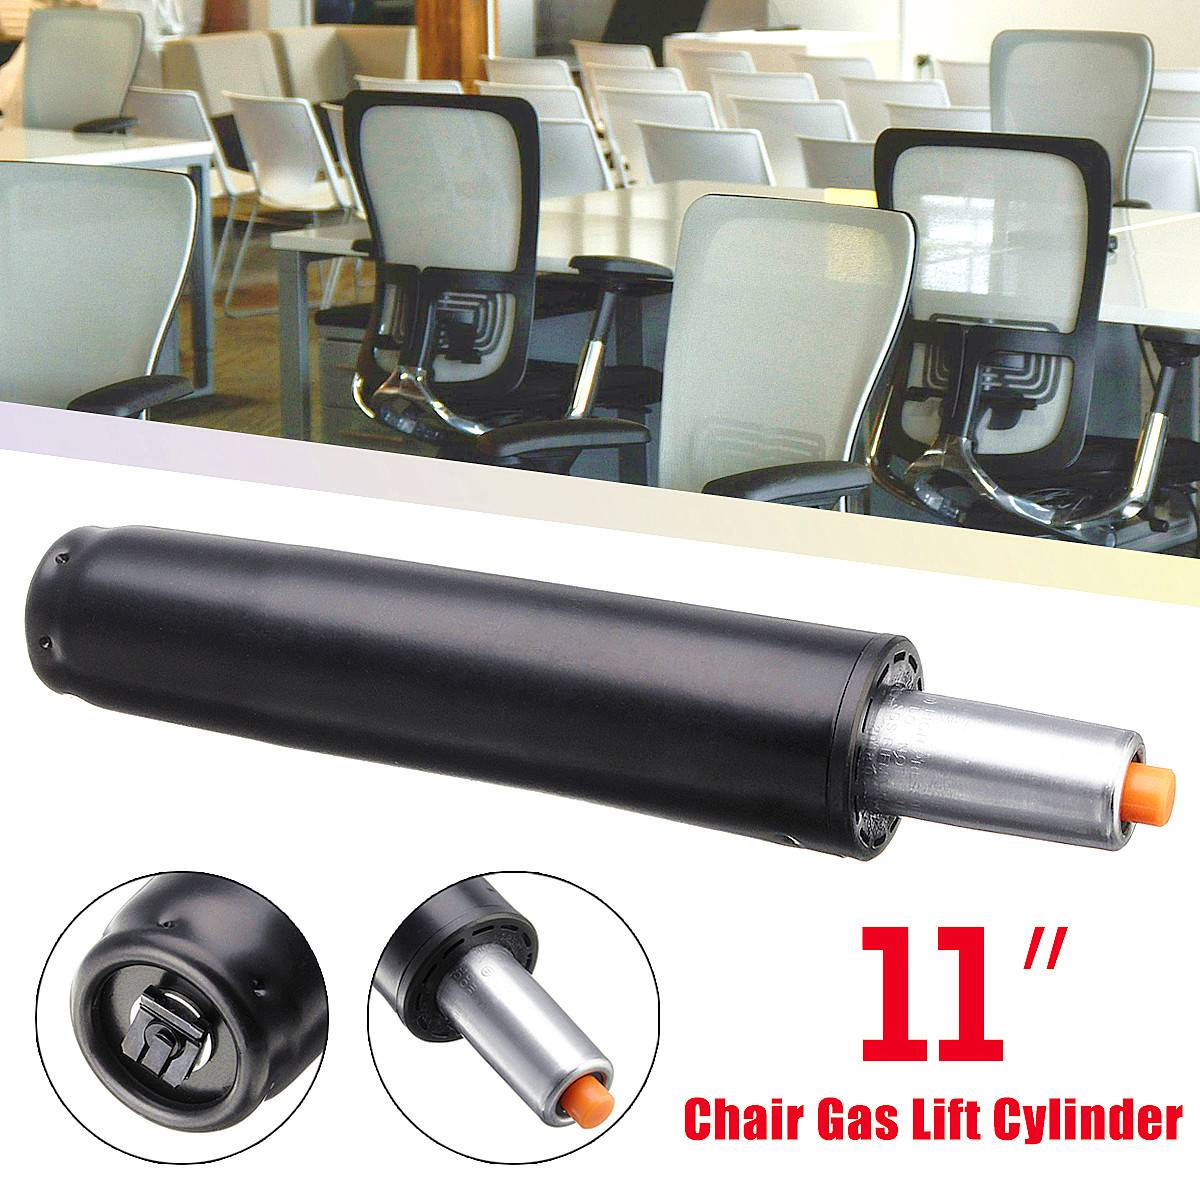 Tremendous Us 9 62 47 Off Heavy 11 Pneumatic Rod Gas Lift Cylinder Chair Replacement Accessories For General Office Chairs Bar Computer Chairs In Pneumatic Dailytribune Chair Design For Home Dailytribuneorg